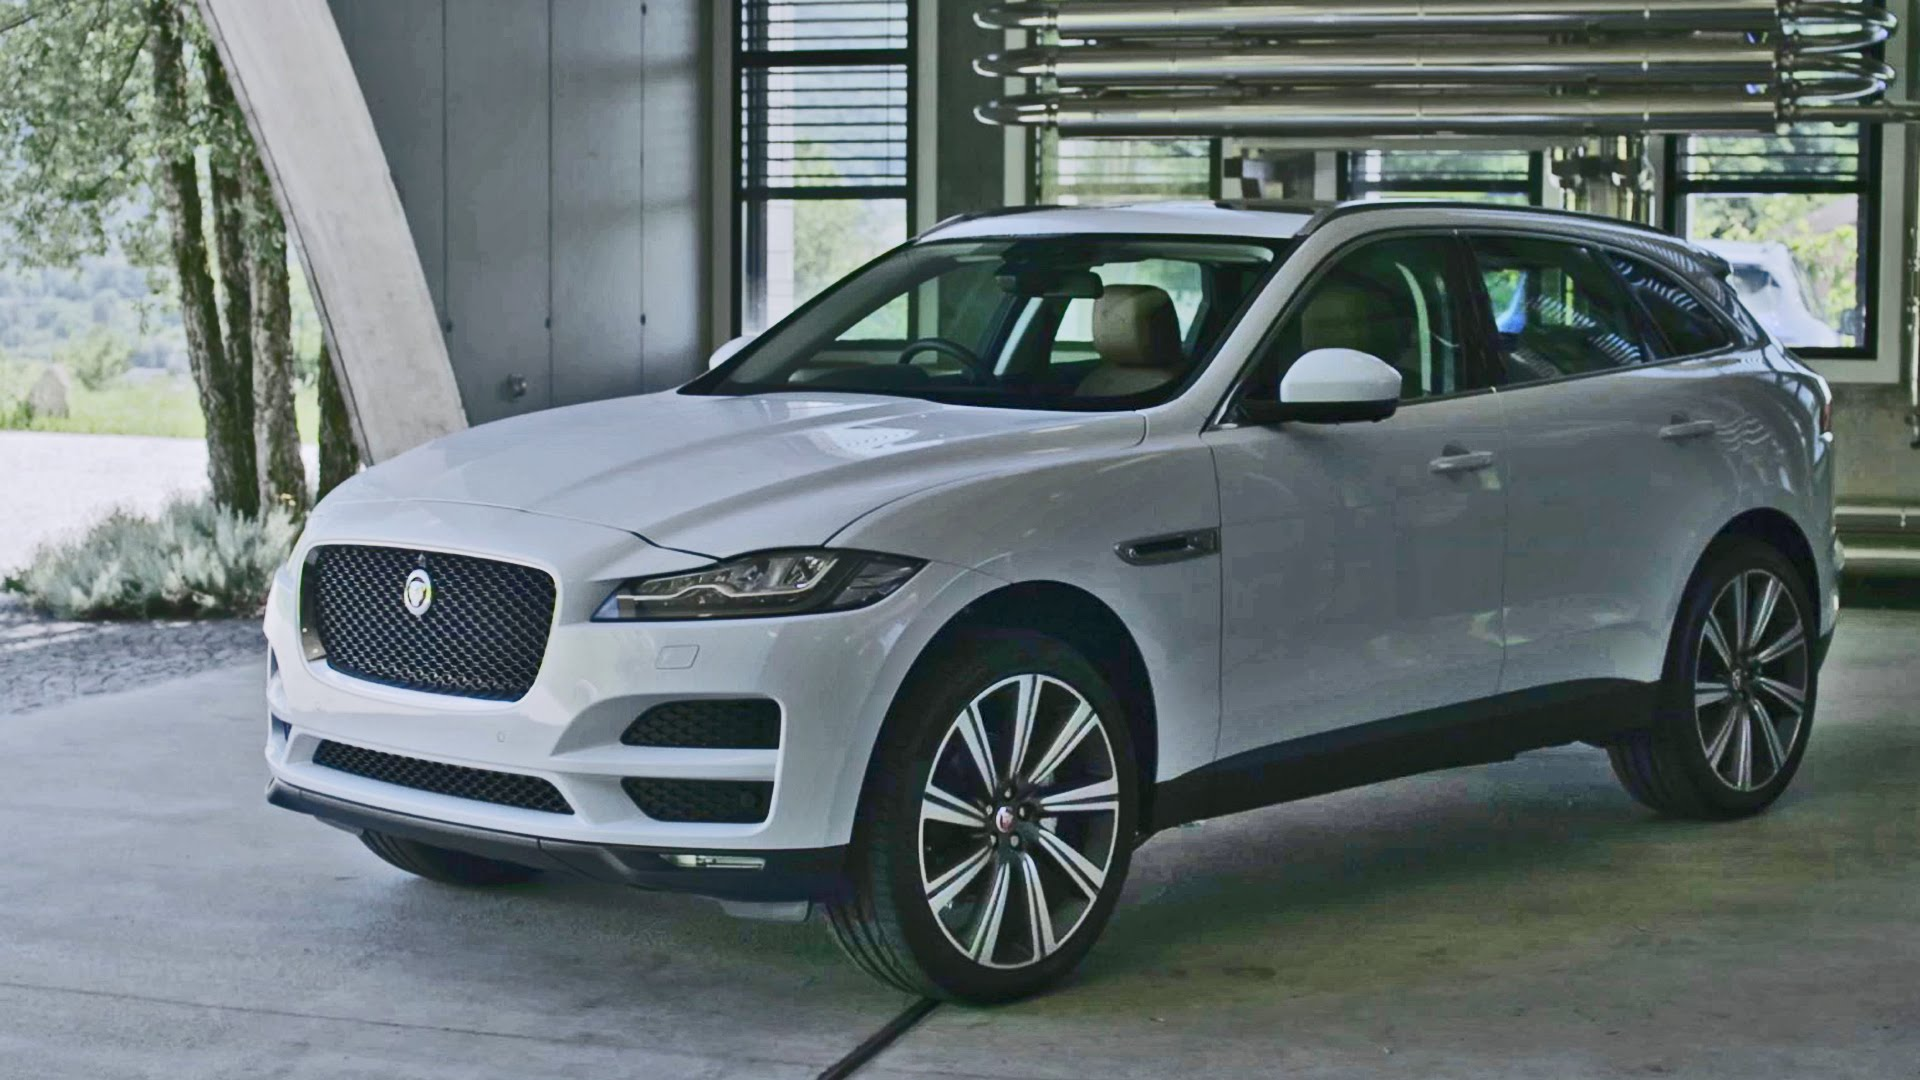 Jaguar F-Pace Widescreen for desktop